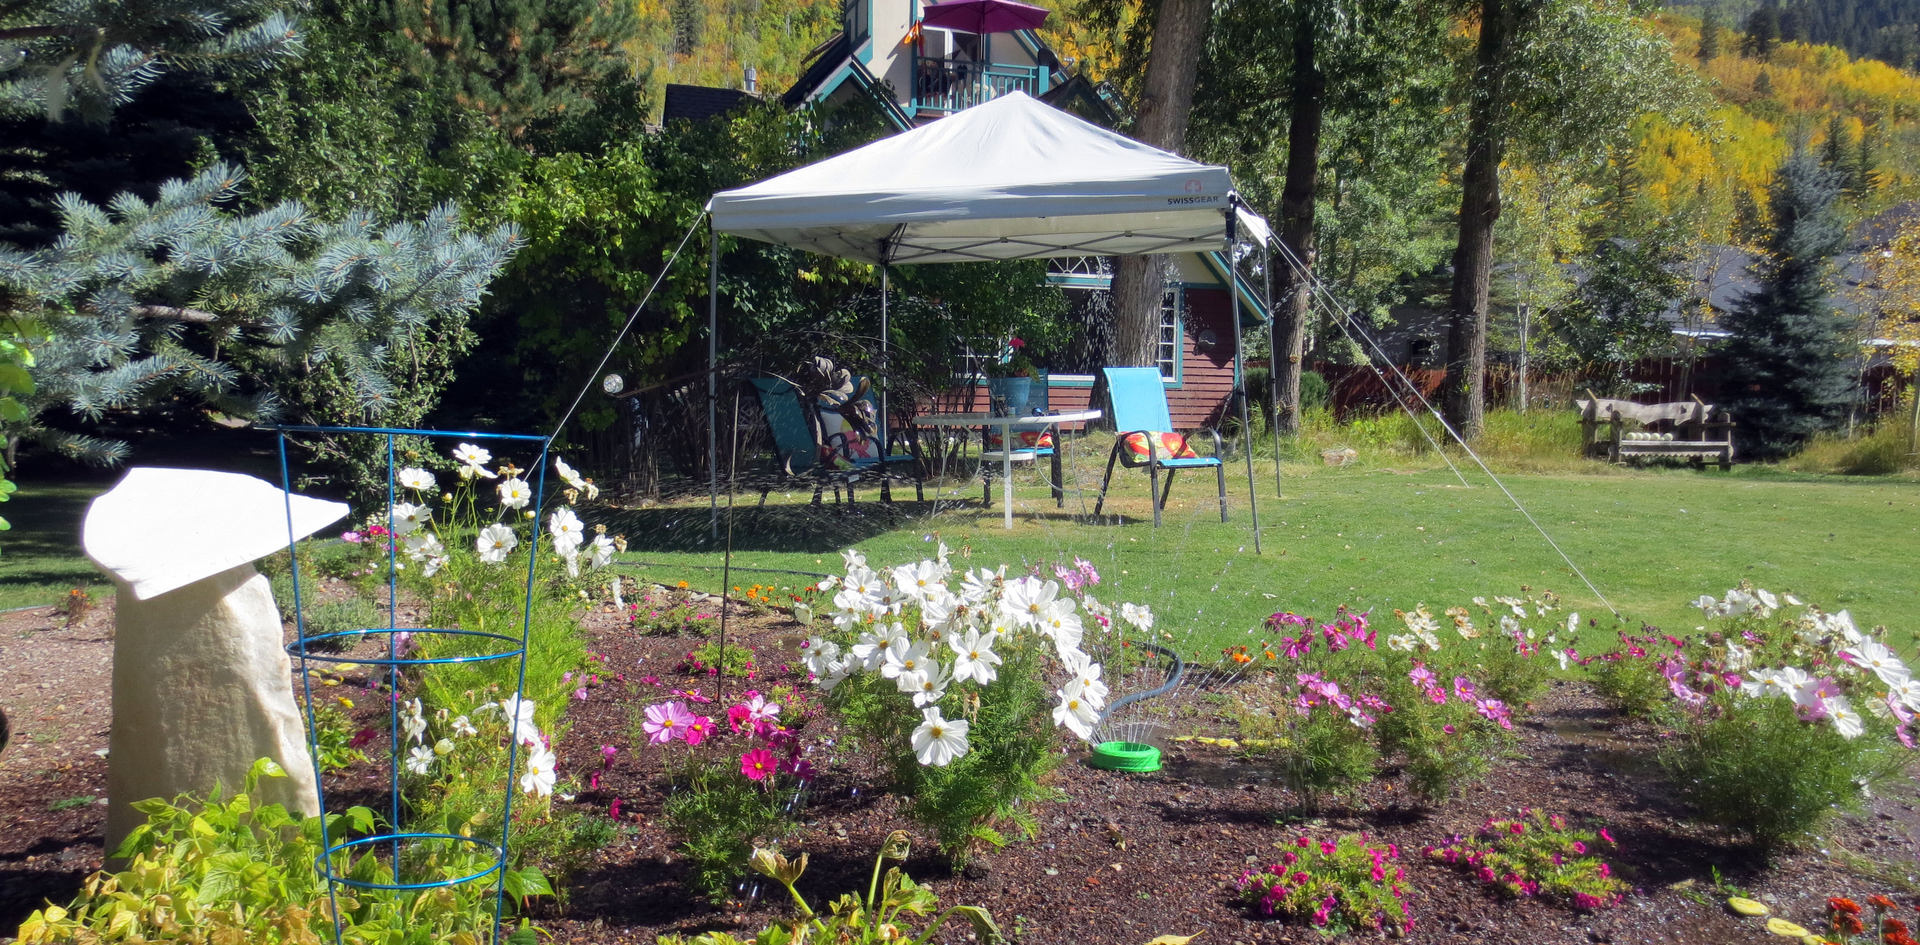 Event tent in the backyard